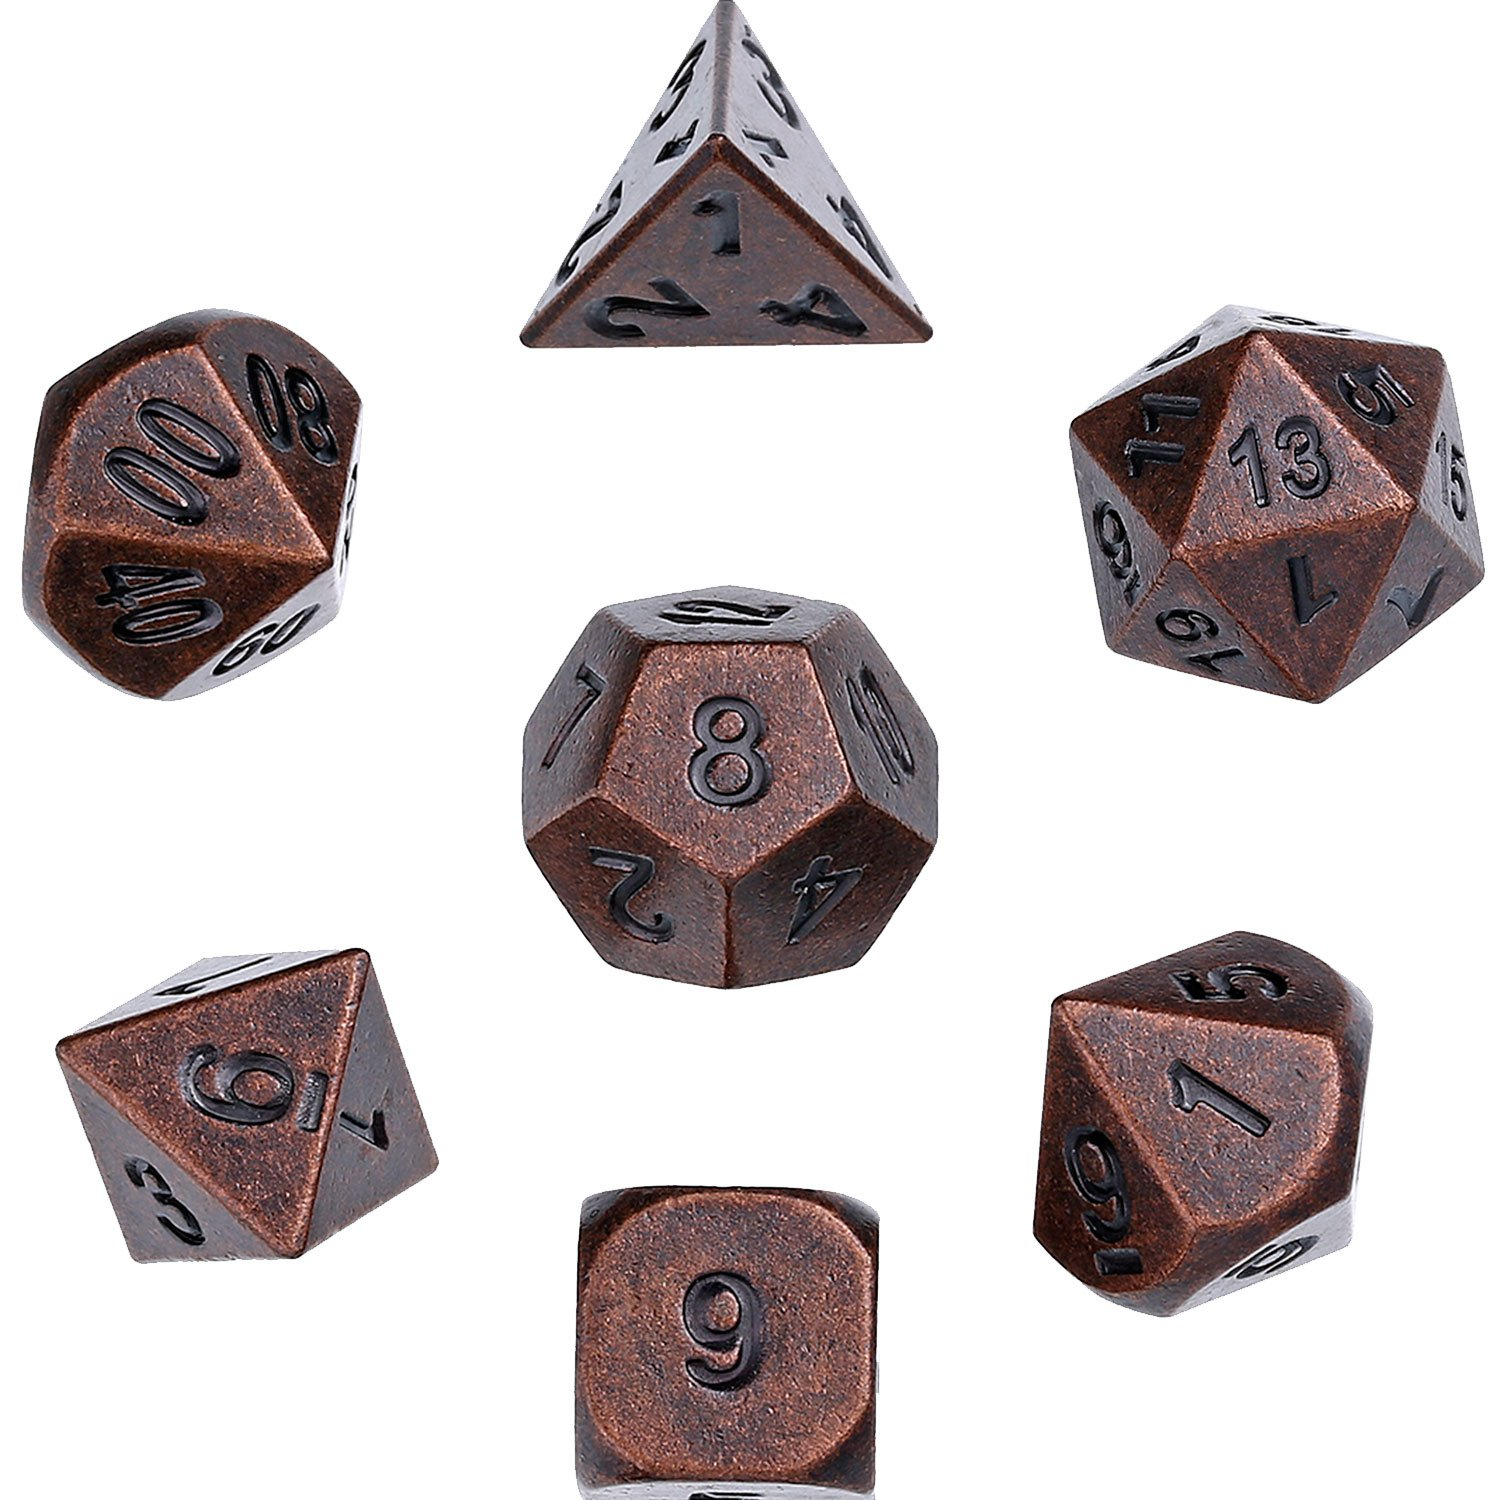 Hestya 7 Pieces Multi-sided Dice Set Metal Polyhedral Dices Game Dice with Random Numbers and Velvet Storage Bags (Red Copper)